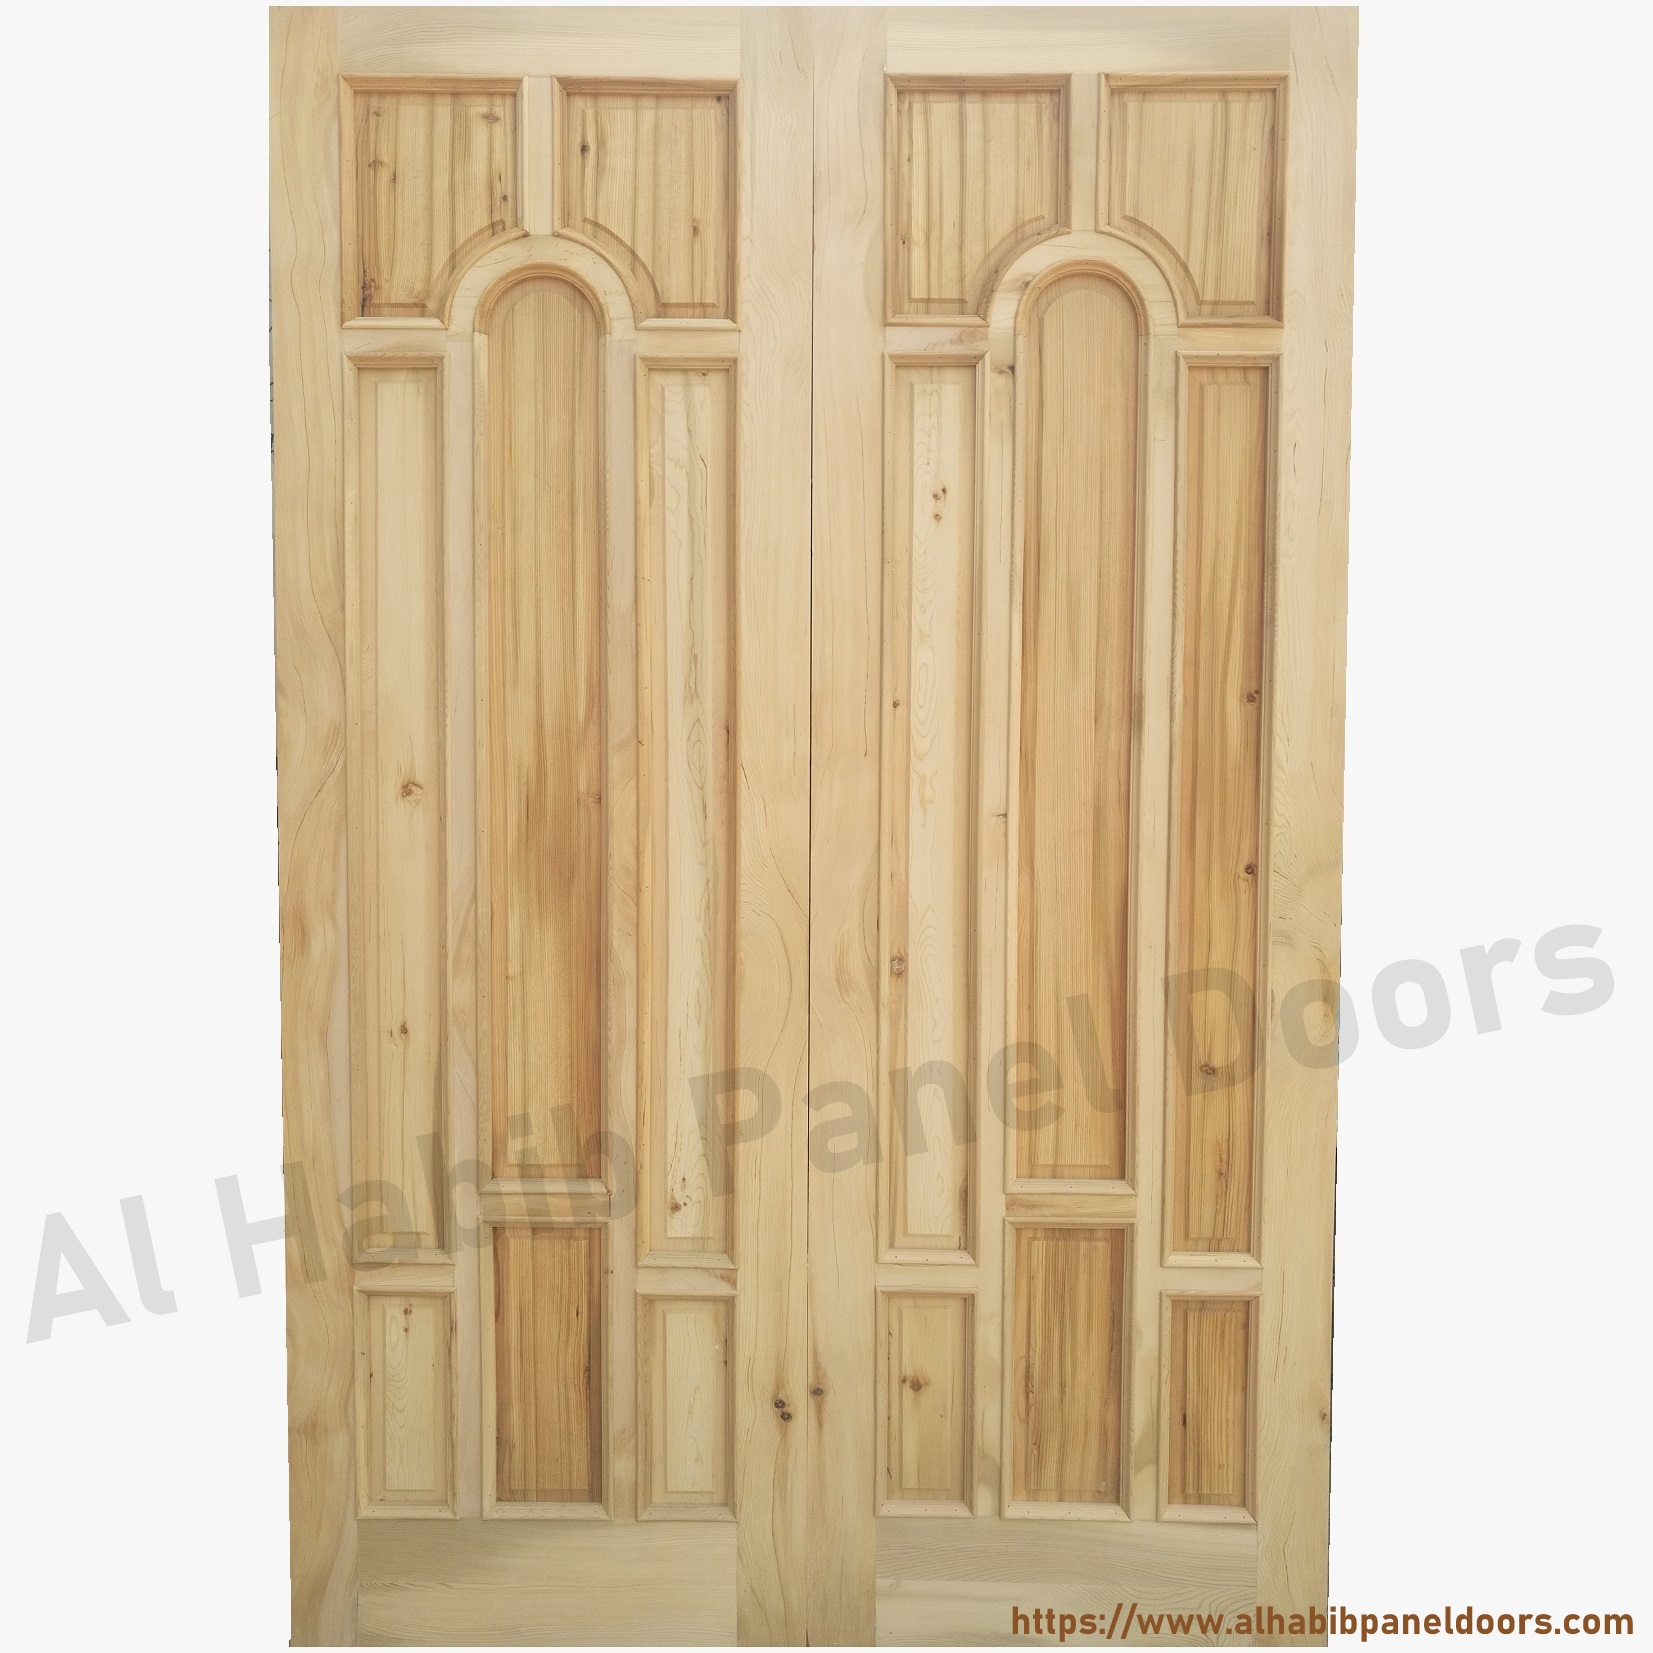 Main double door hpd329 main doors al habib panel doors for Main entrance doors design for home